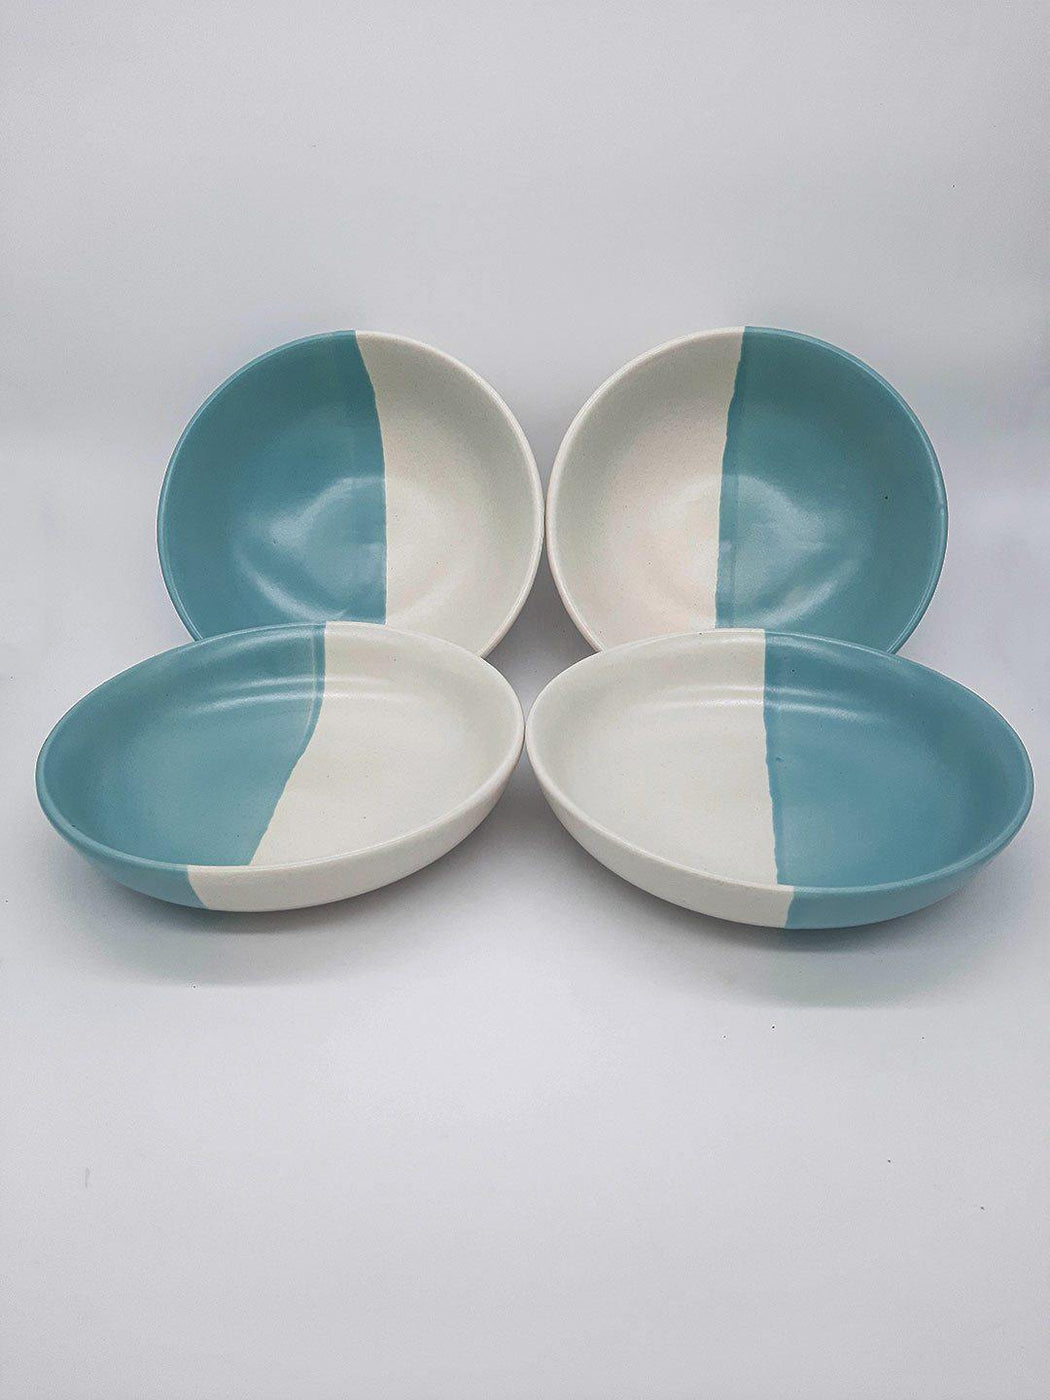 Kypelo Bowl Blue - Set of 4 - Thevasa